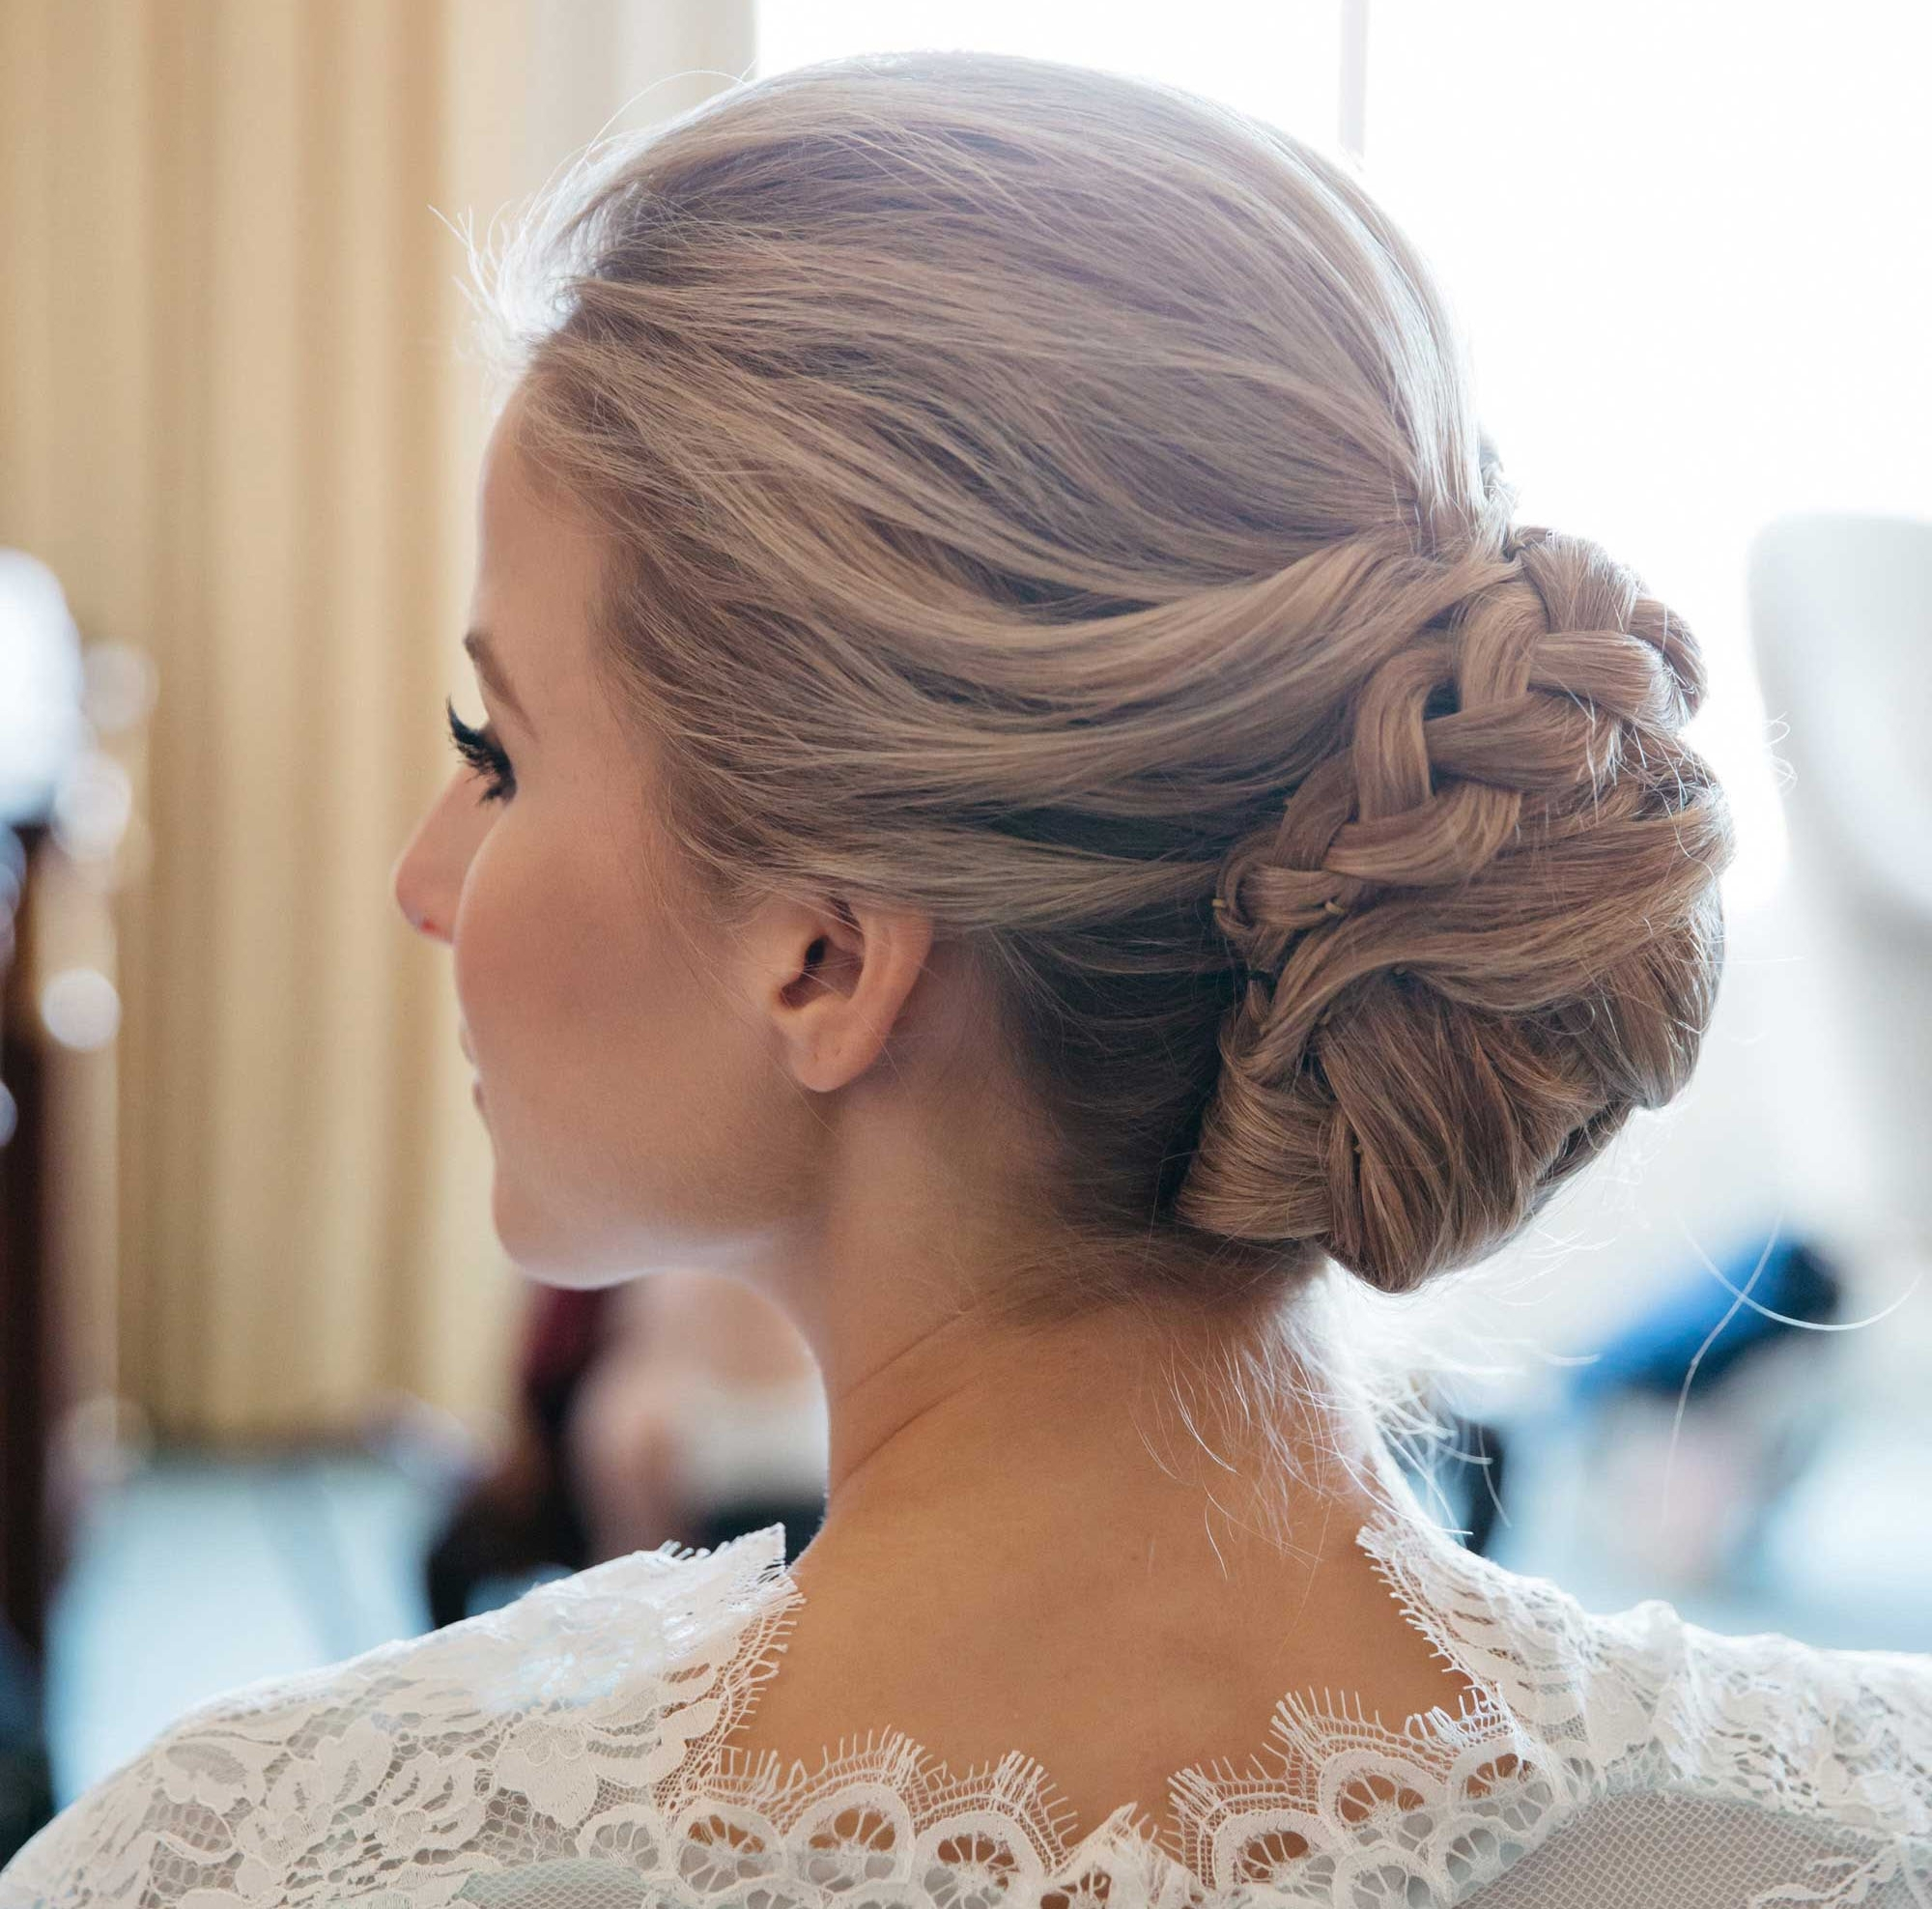 Braided Hairstyles: 5 Ideas For Your Wedding Look – Inside Weddings Within Recent Wedding Updos For Long Hair With Braids (View 6 of 15)